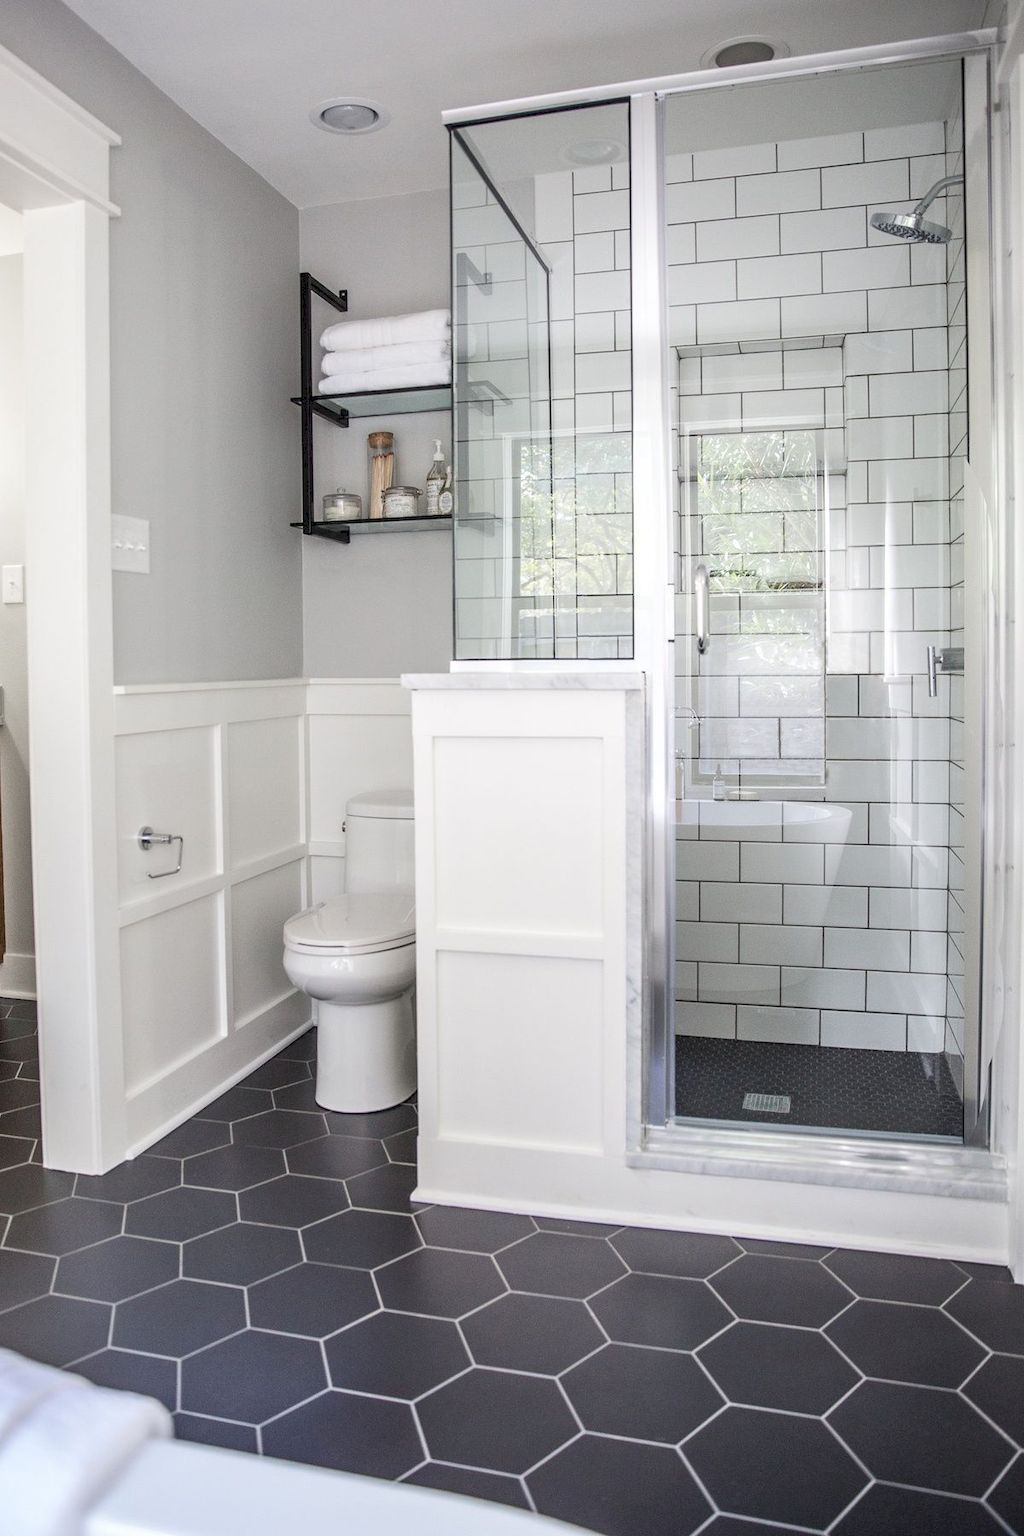 17 Adorable Narrow Bathroom Remodel Frosted Glass Ideas Restroomremodel 6 Opti Adorable B In 2020 Full Bathroom Remodel Small Full Bathroom Small Master Bathroom